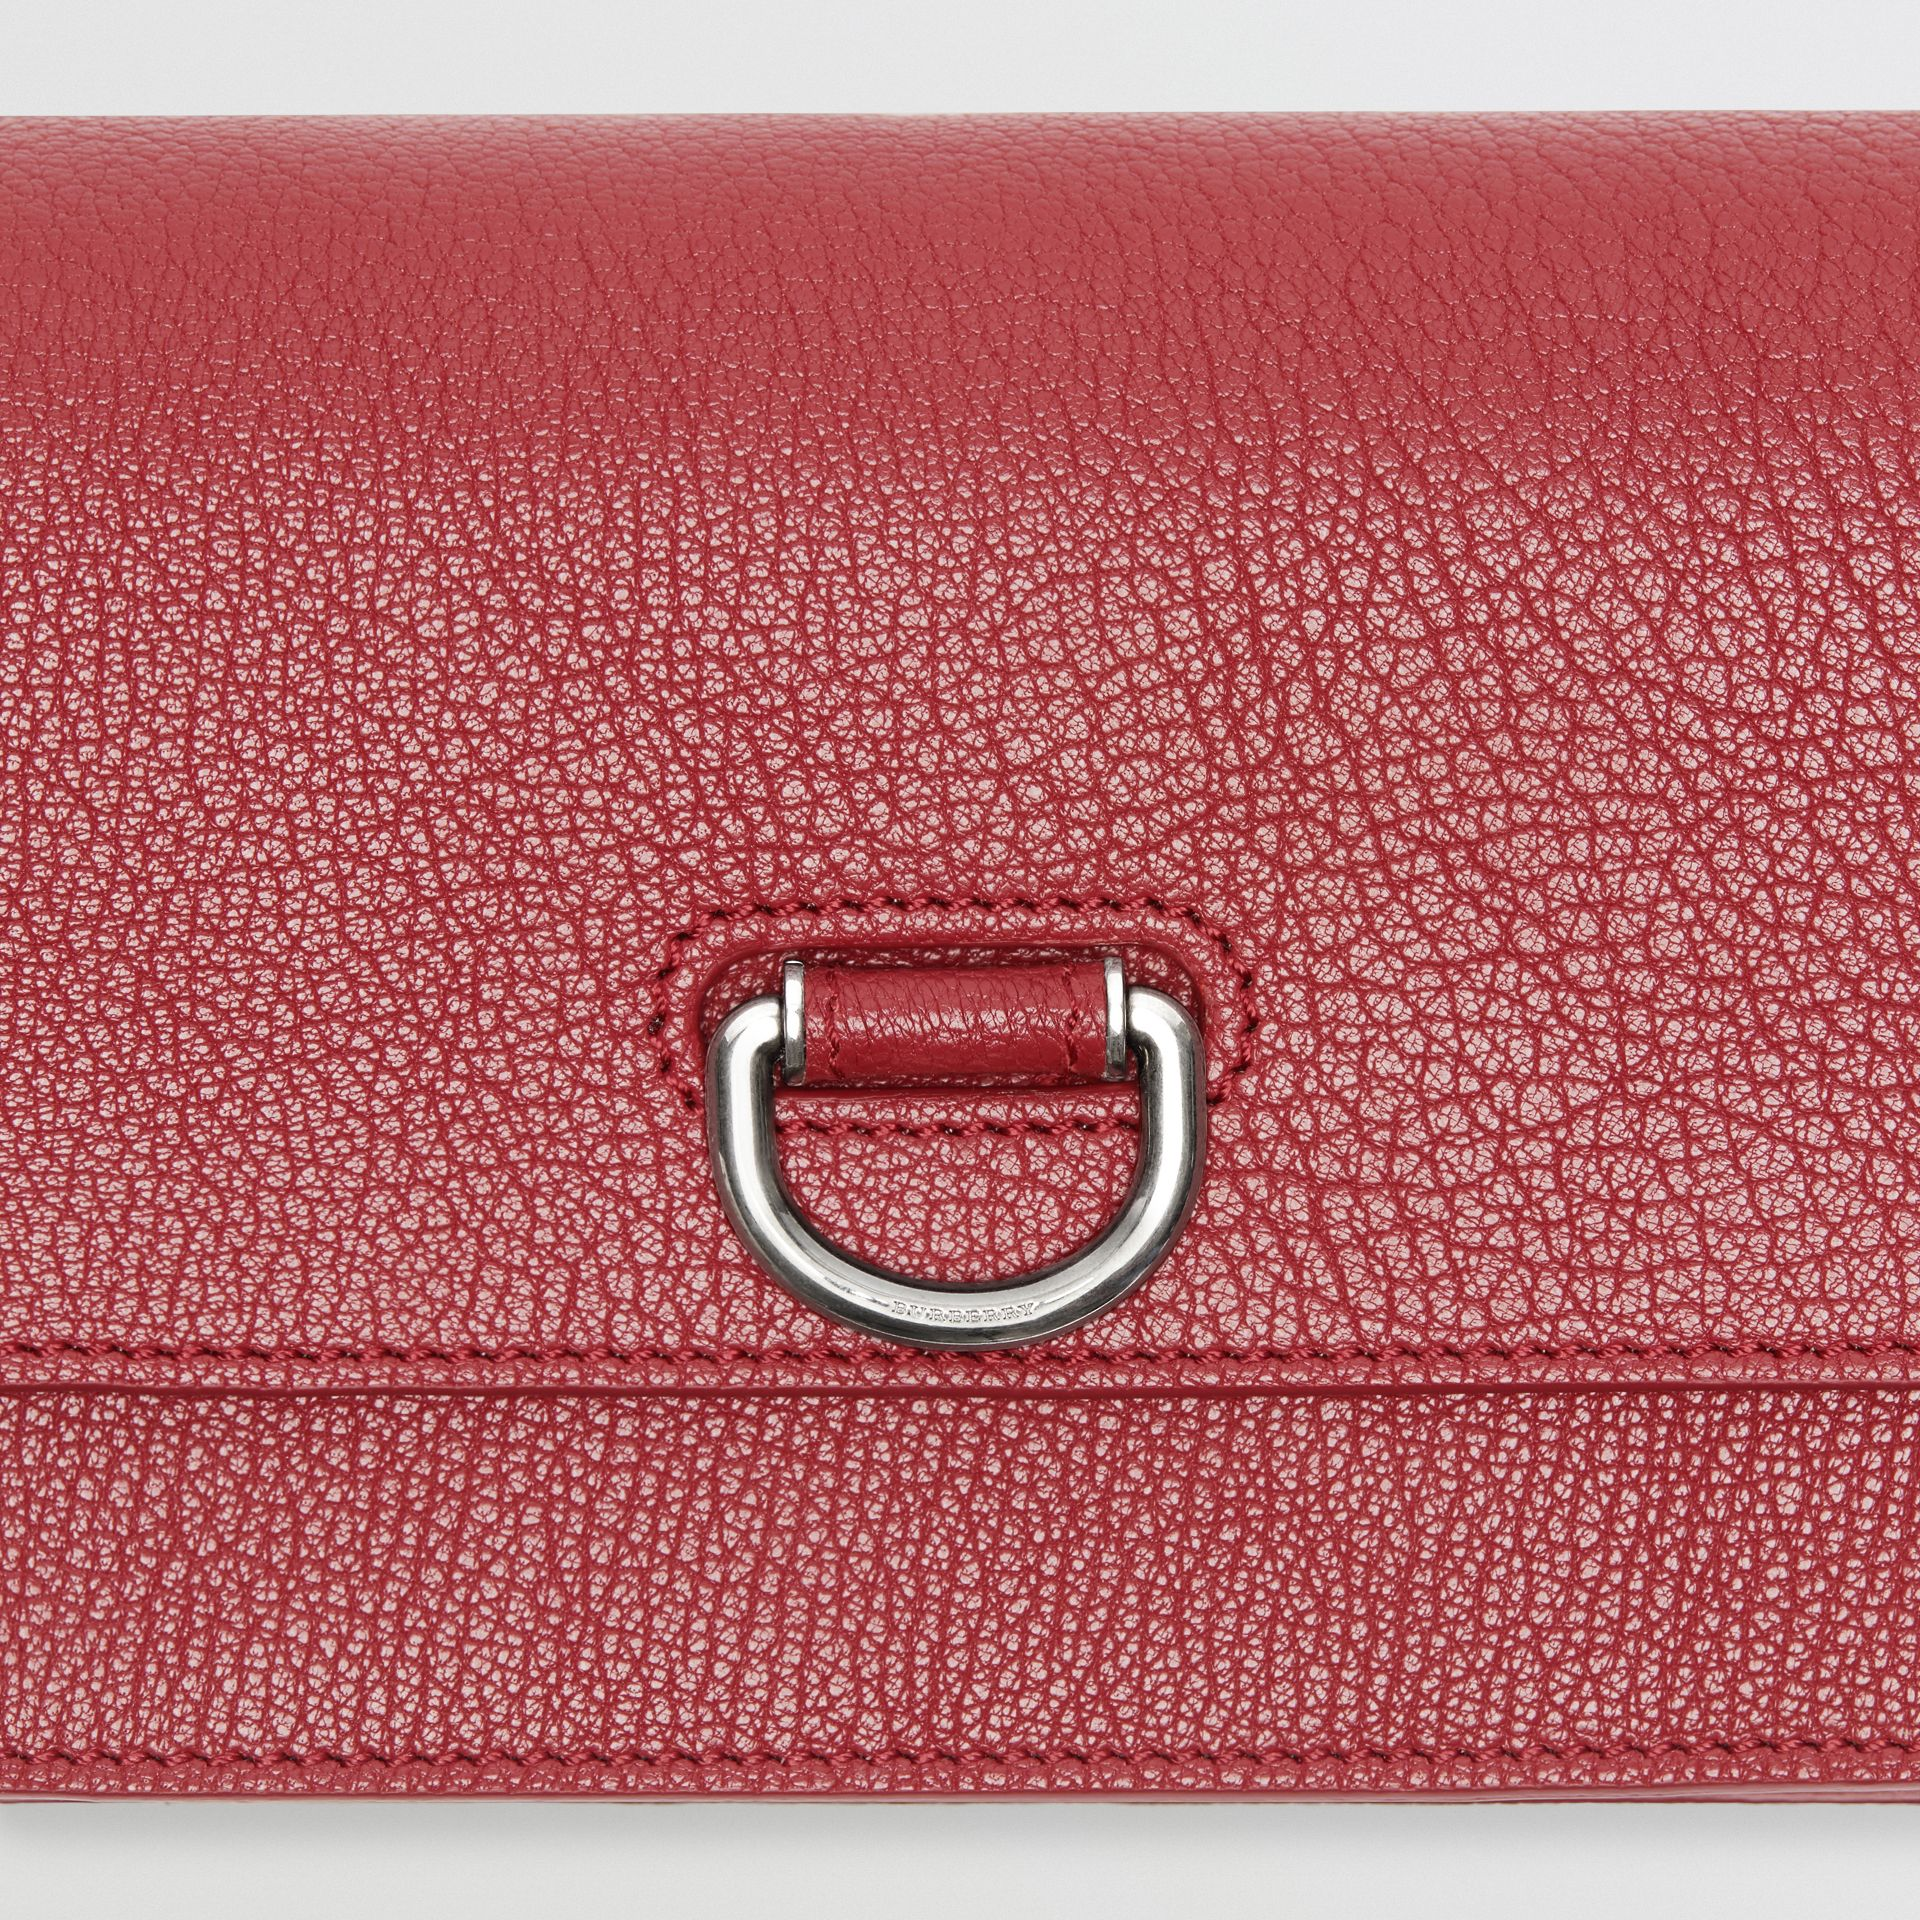 The Mini Leather D-ring Bag in Crimson - Women | Burberry United Kingdom - gallery image 1